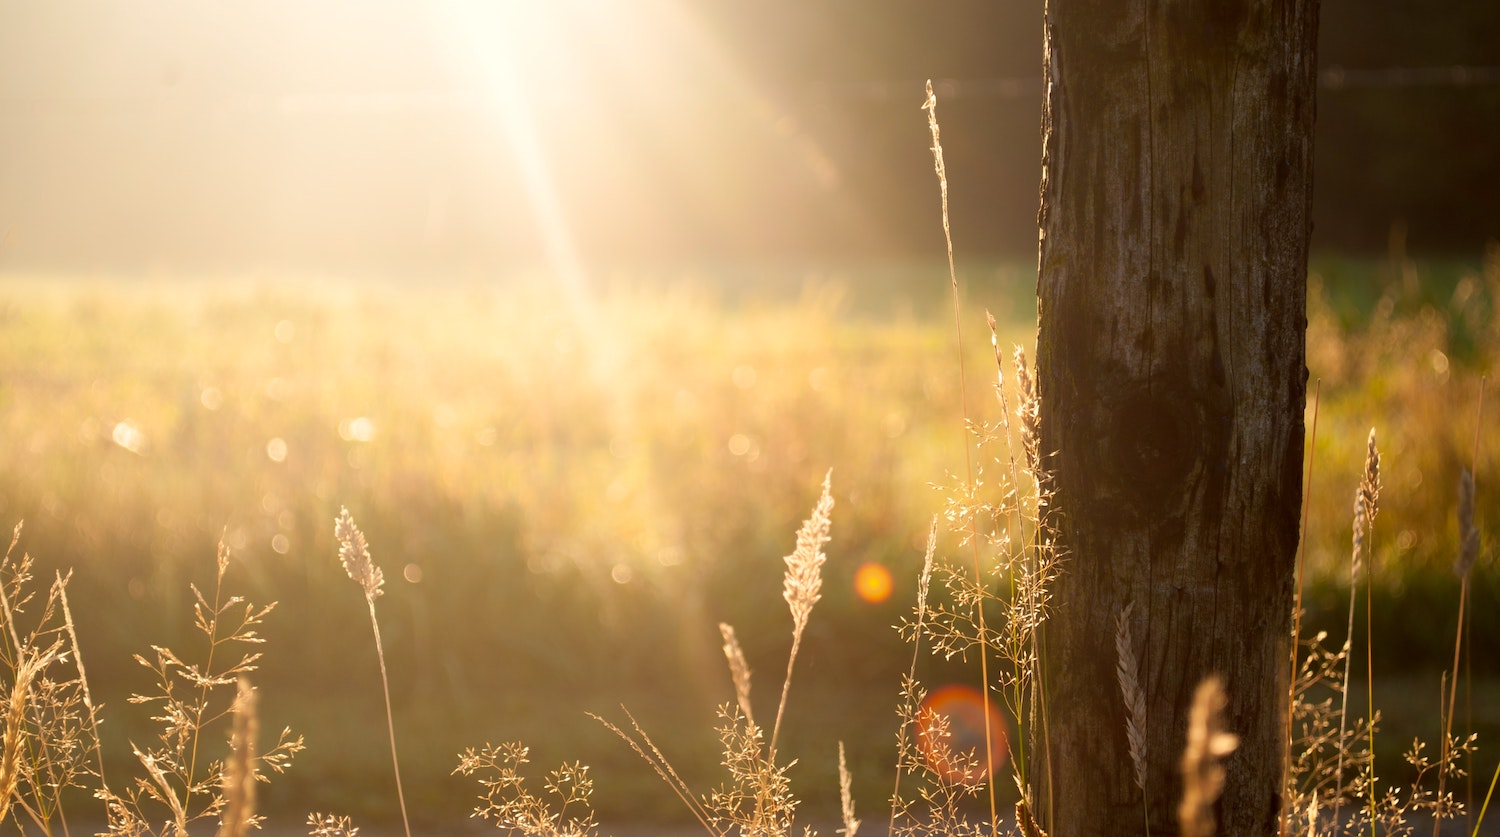 Forest with sun in background